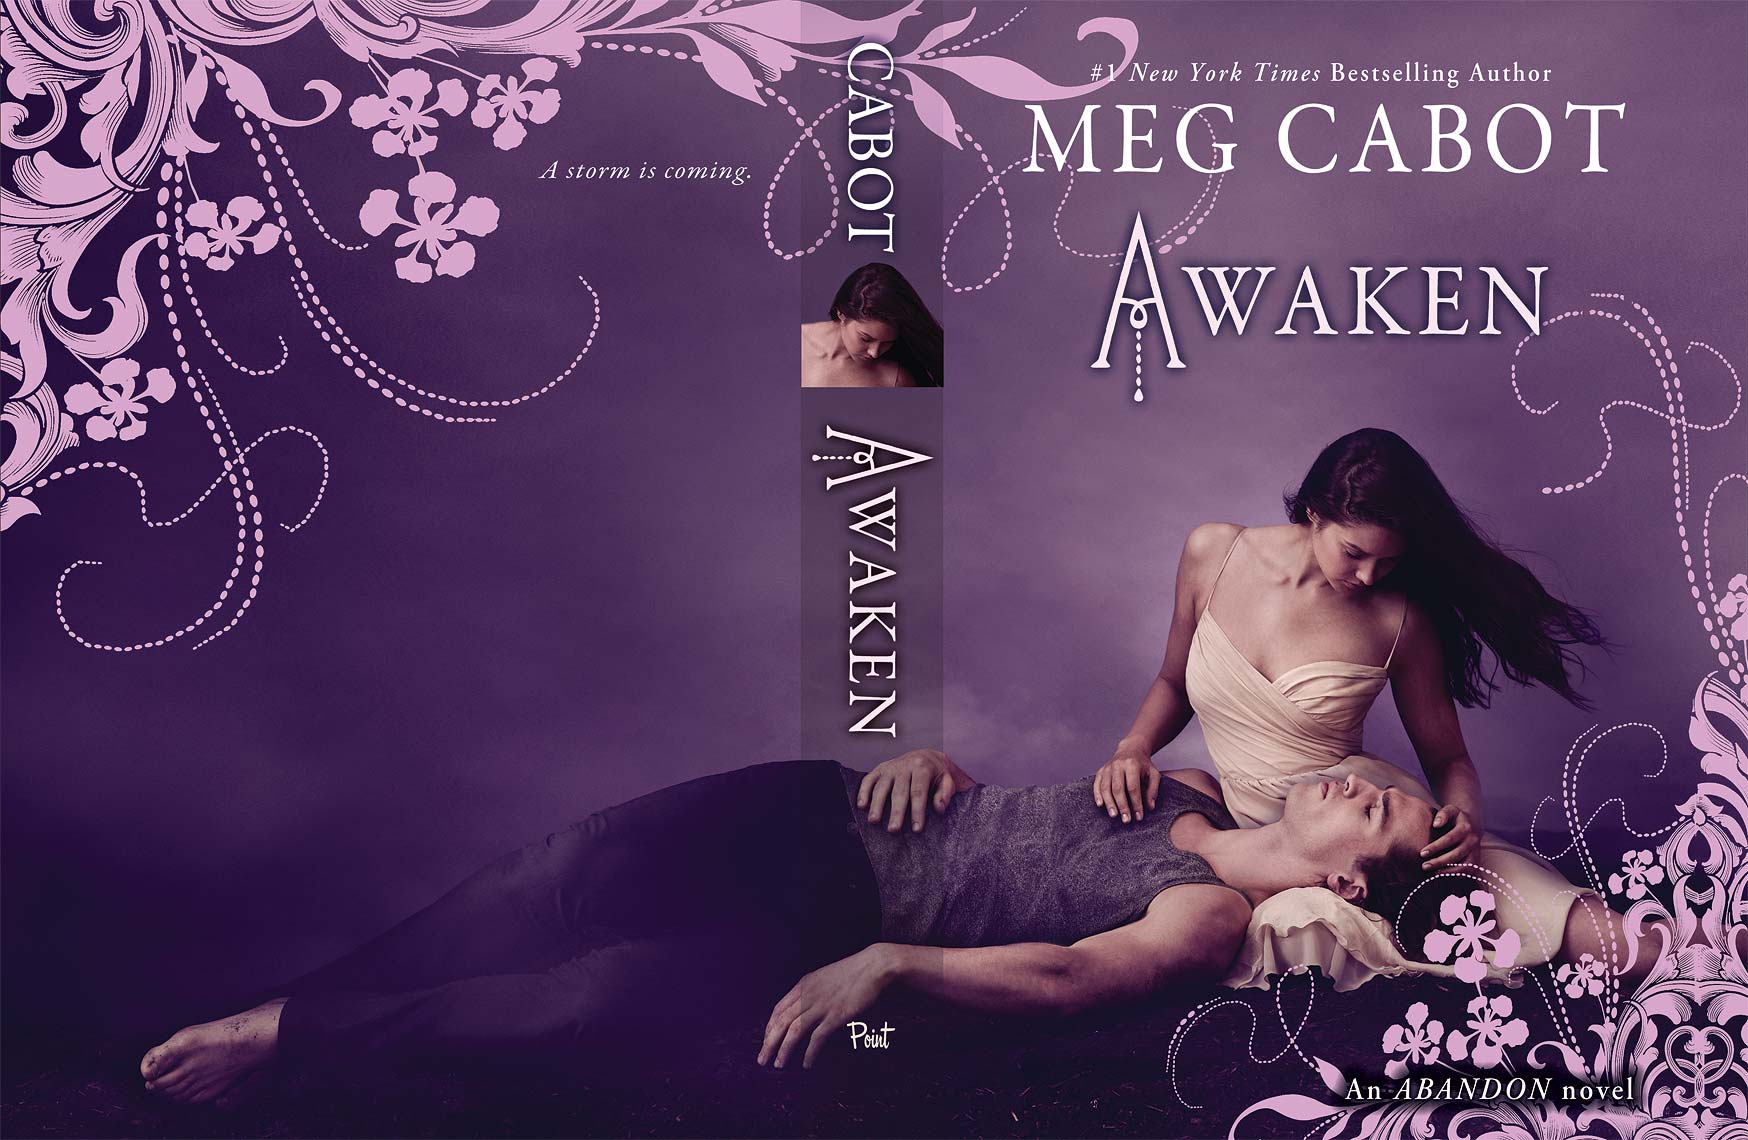 Awaken - Meg Cabot - Abandon | Michael Frost Photography